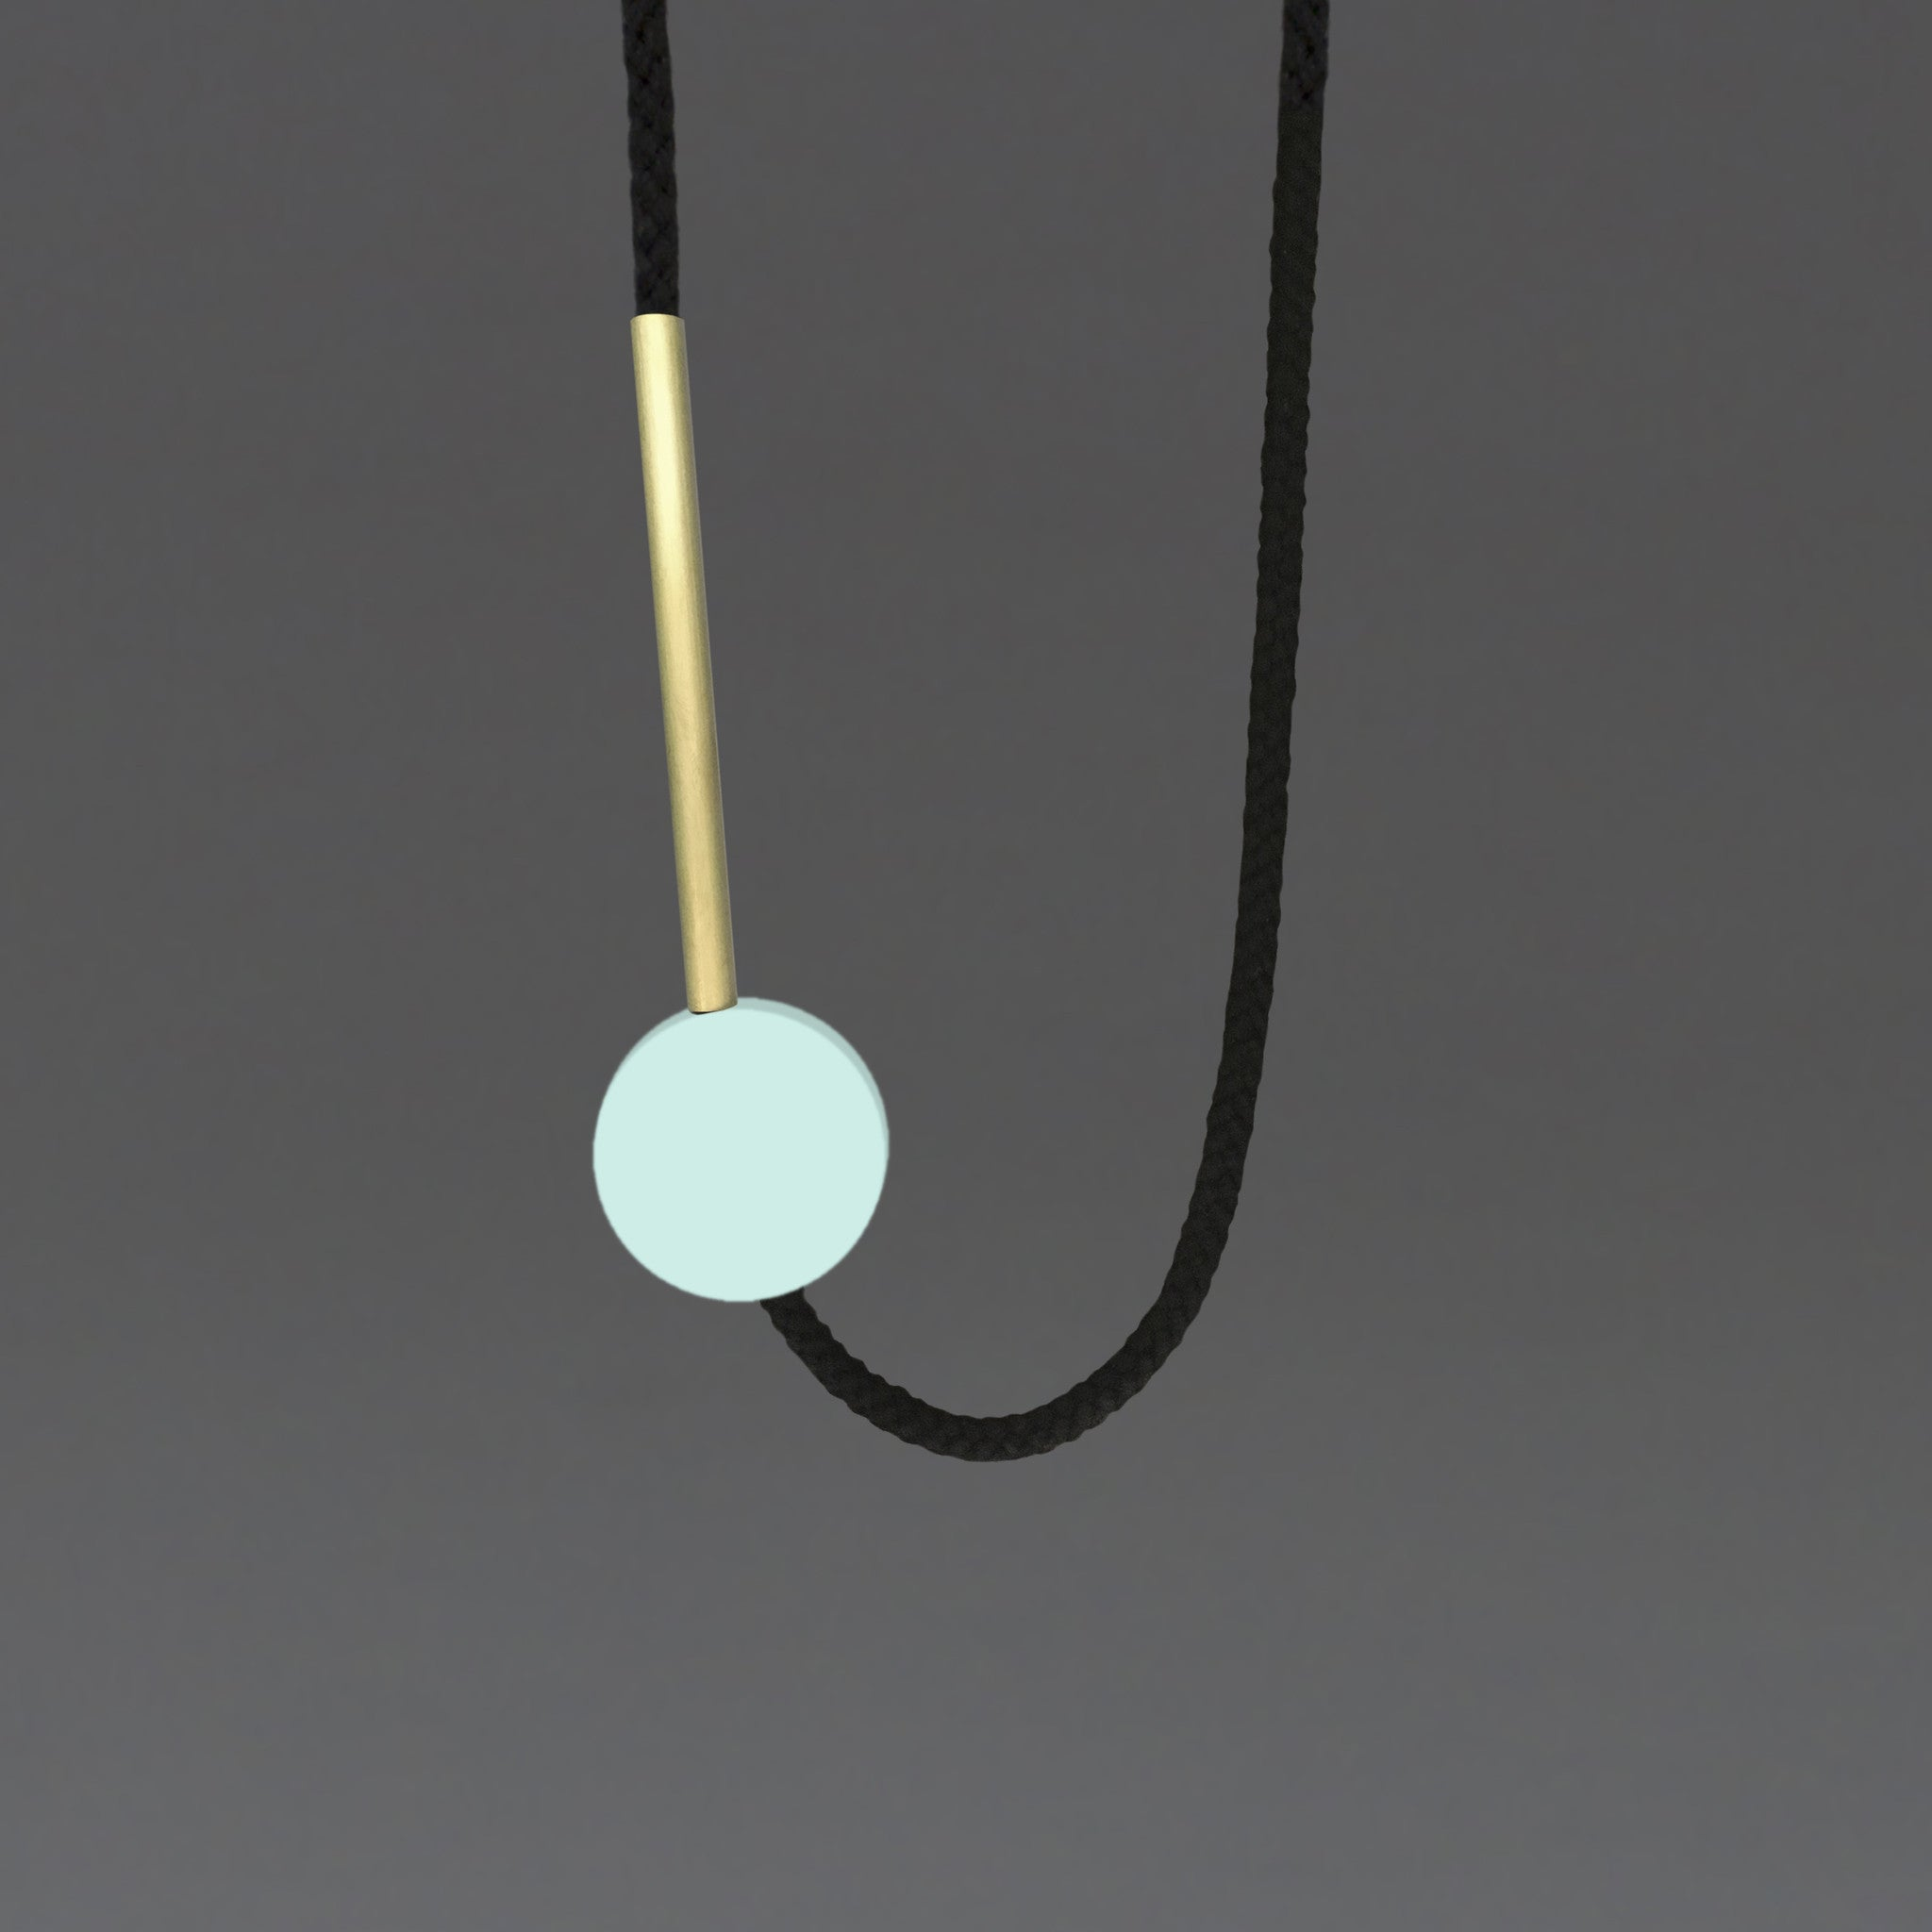 The Gia necklace is a pared down and striking design. Composed of a perfect mint resin circle and a 10cm brass tube. Cord length is fully adjustable using the little wooden ball at the back of the neck. This necklace can work both on a casual outfit or in a smarter look too. Handmade in our London studio.